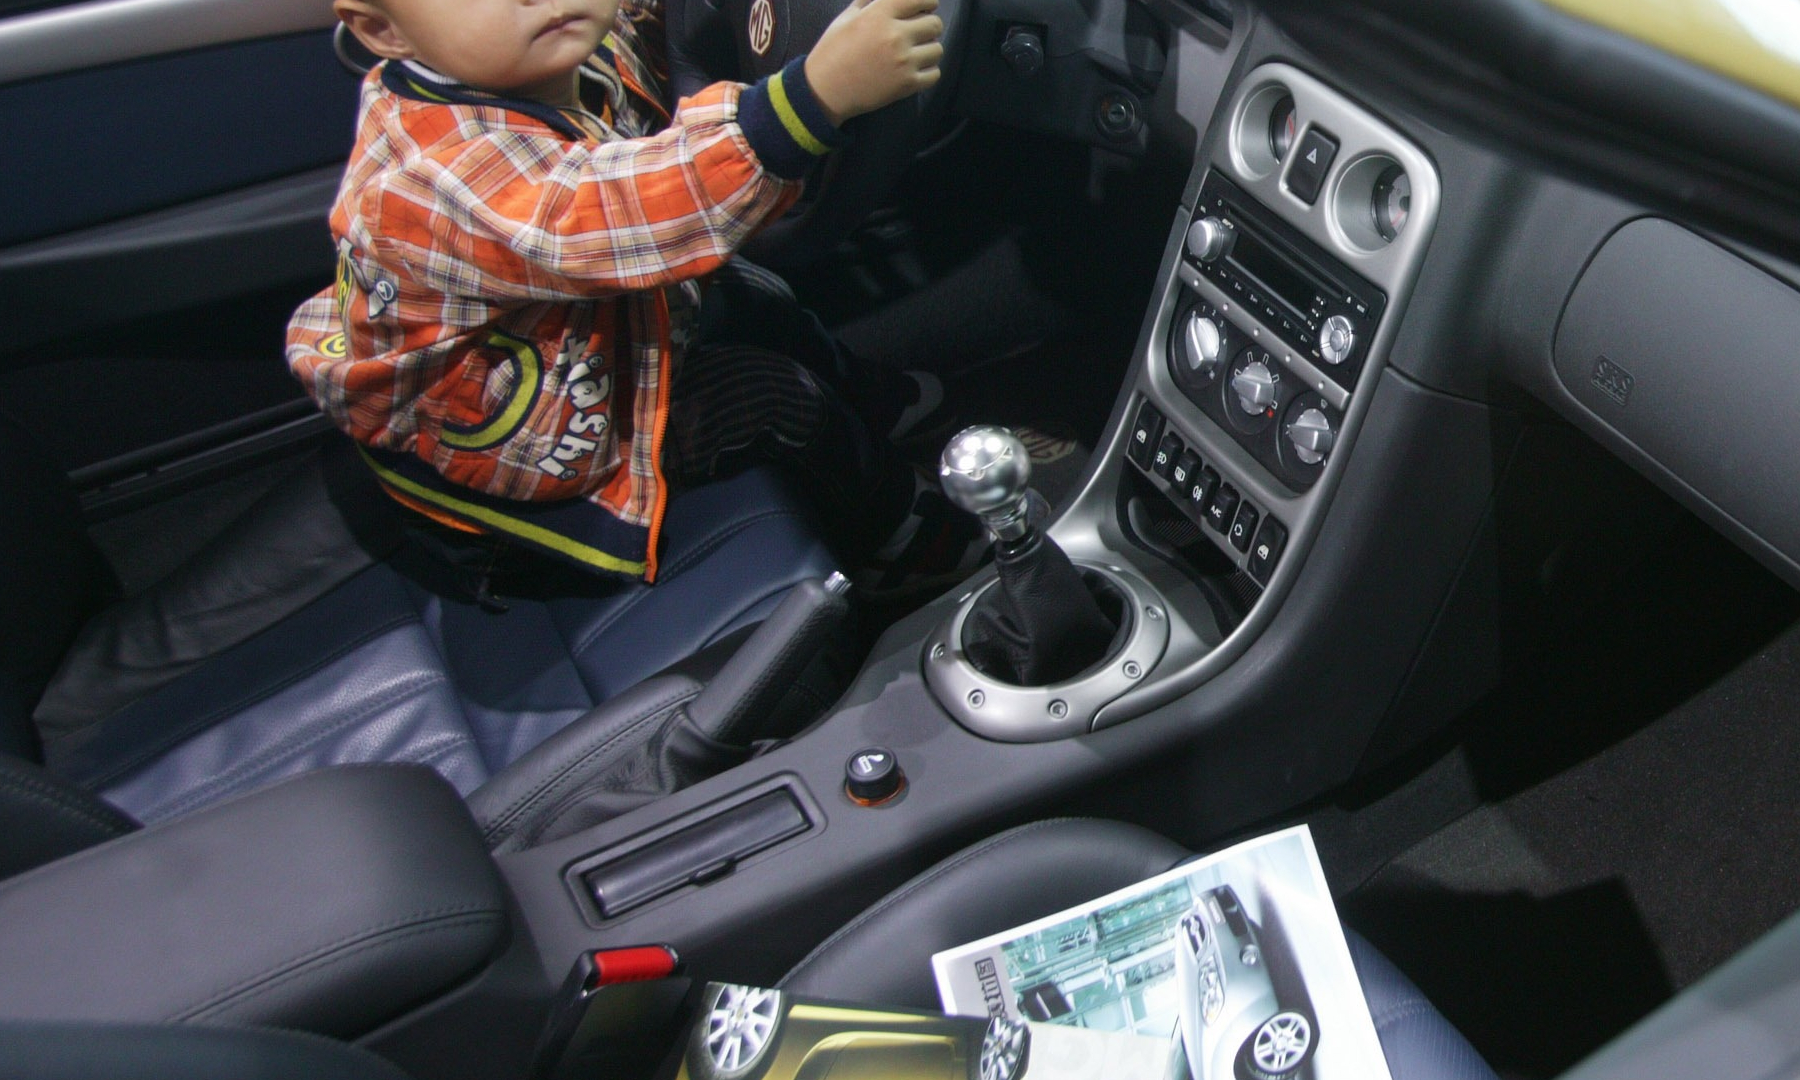 Five-Year-Old Boy Drives Car Looking for Father, Stops After Traffic Accident